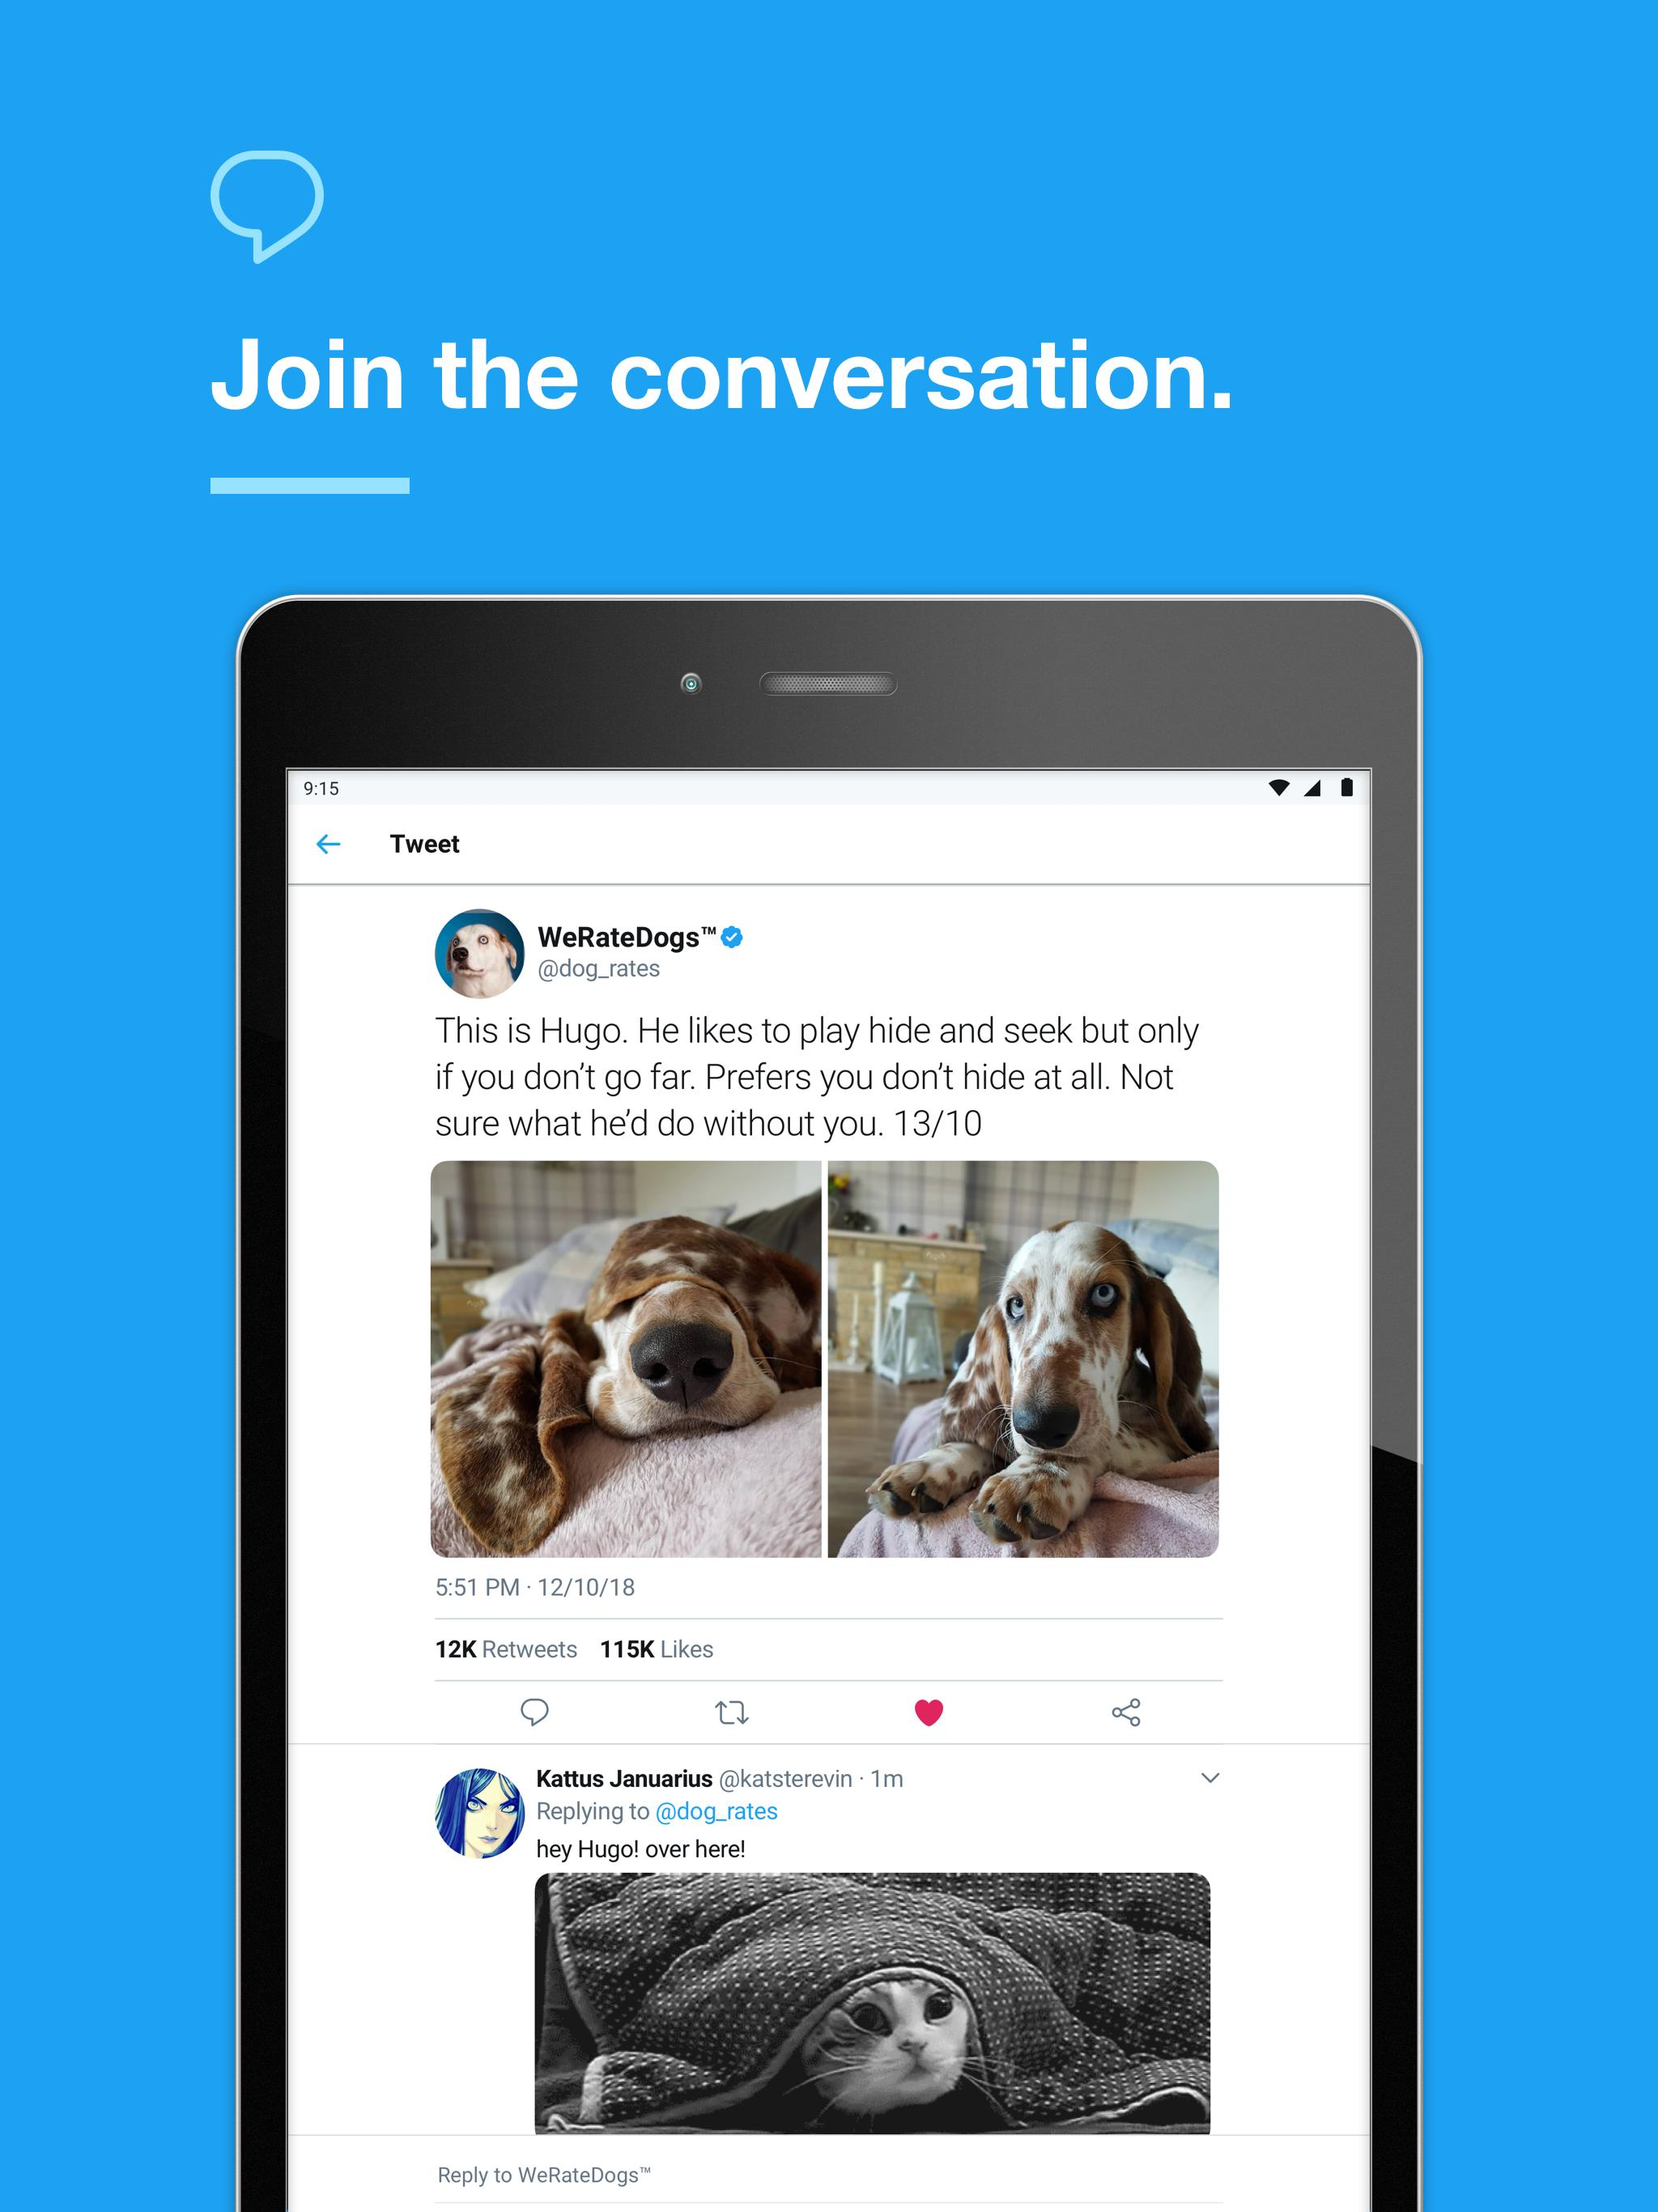 download twitter apk for android 4.1.2